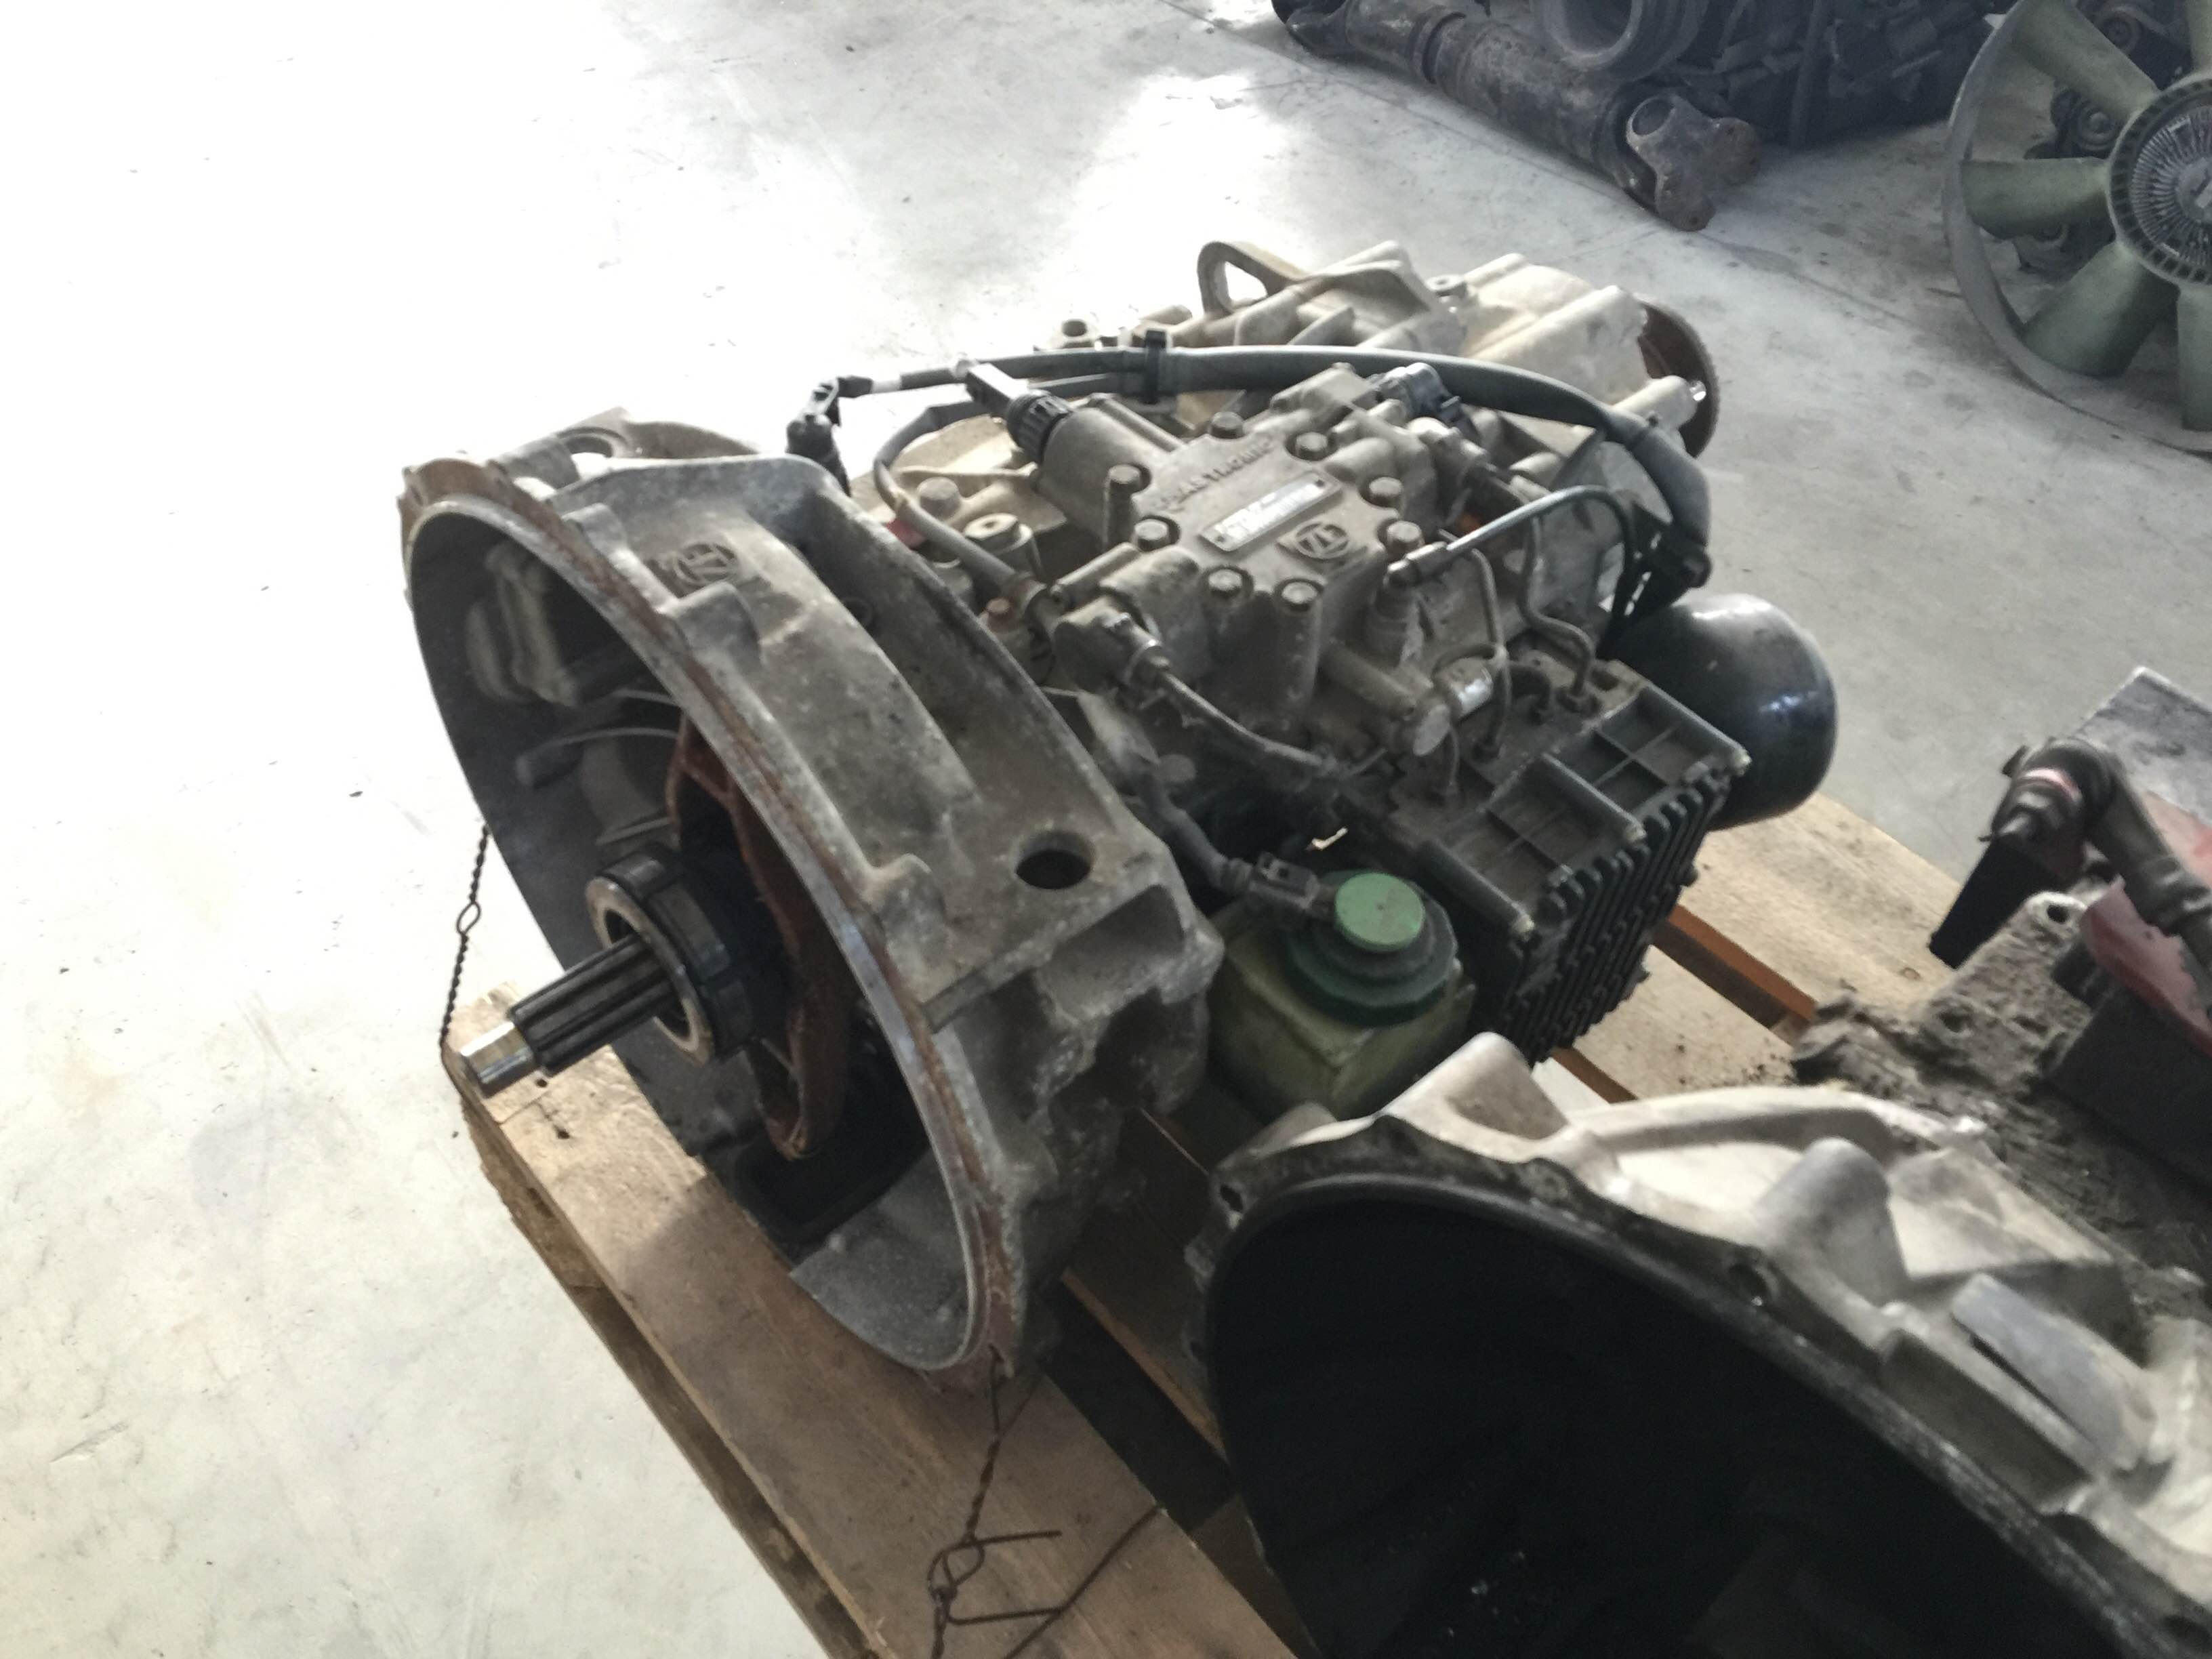 cambio zf 6 as 700 to zf 1347 061 002